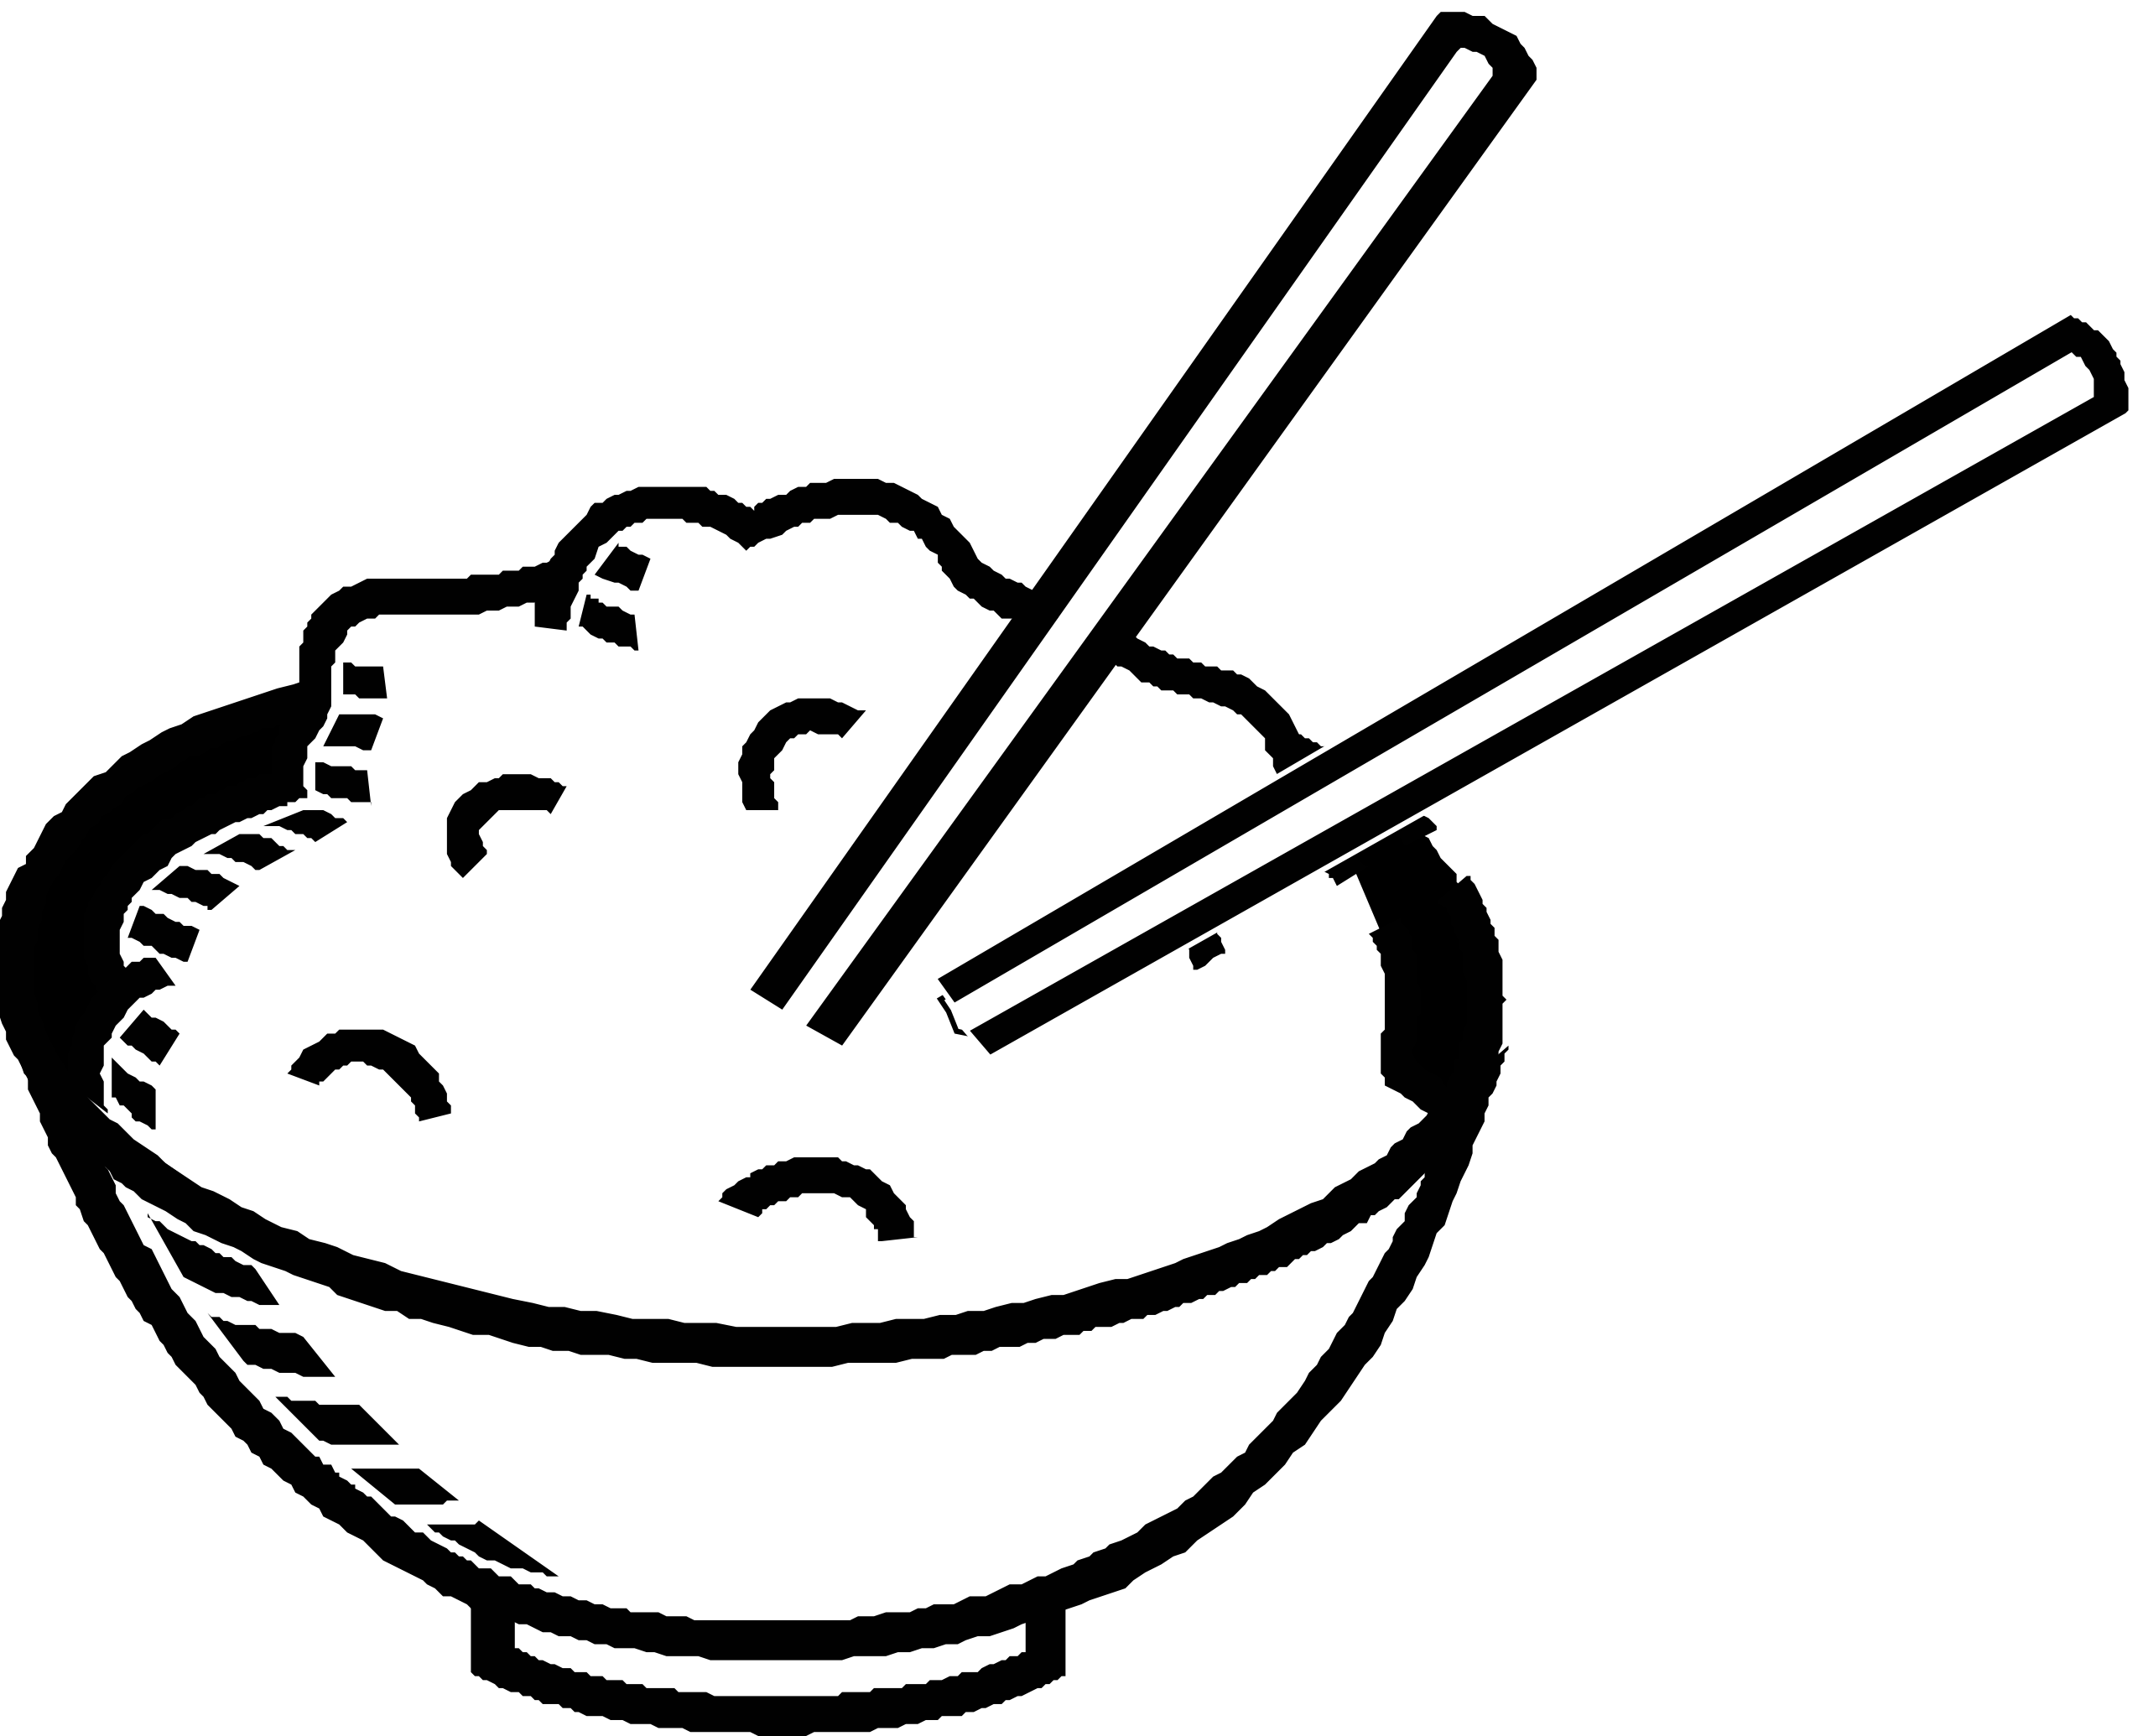 Rice clipart #4, Download drawings